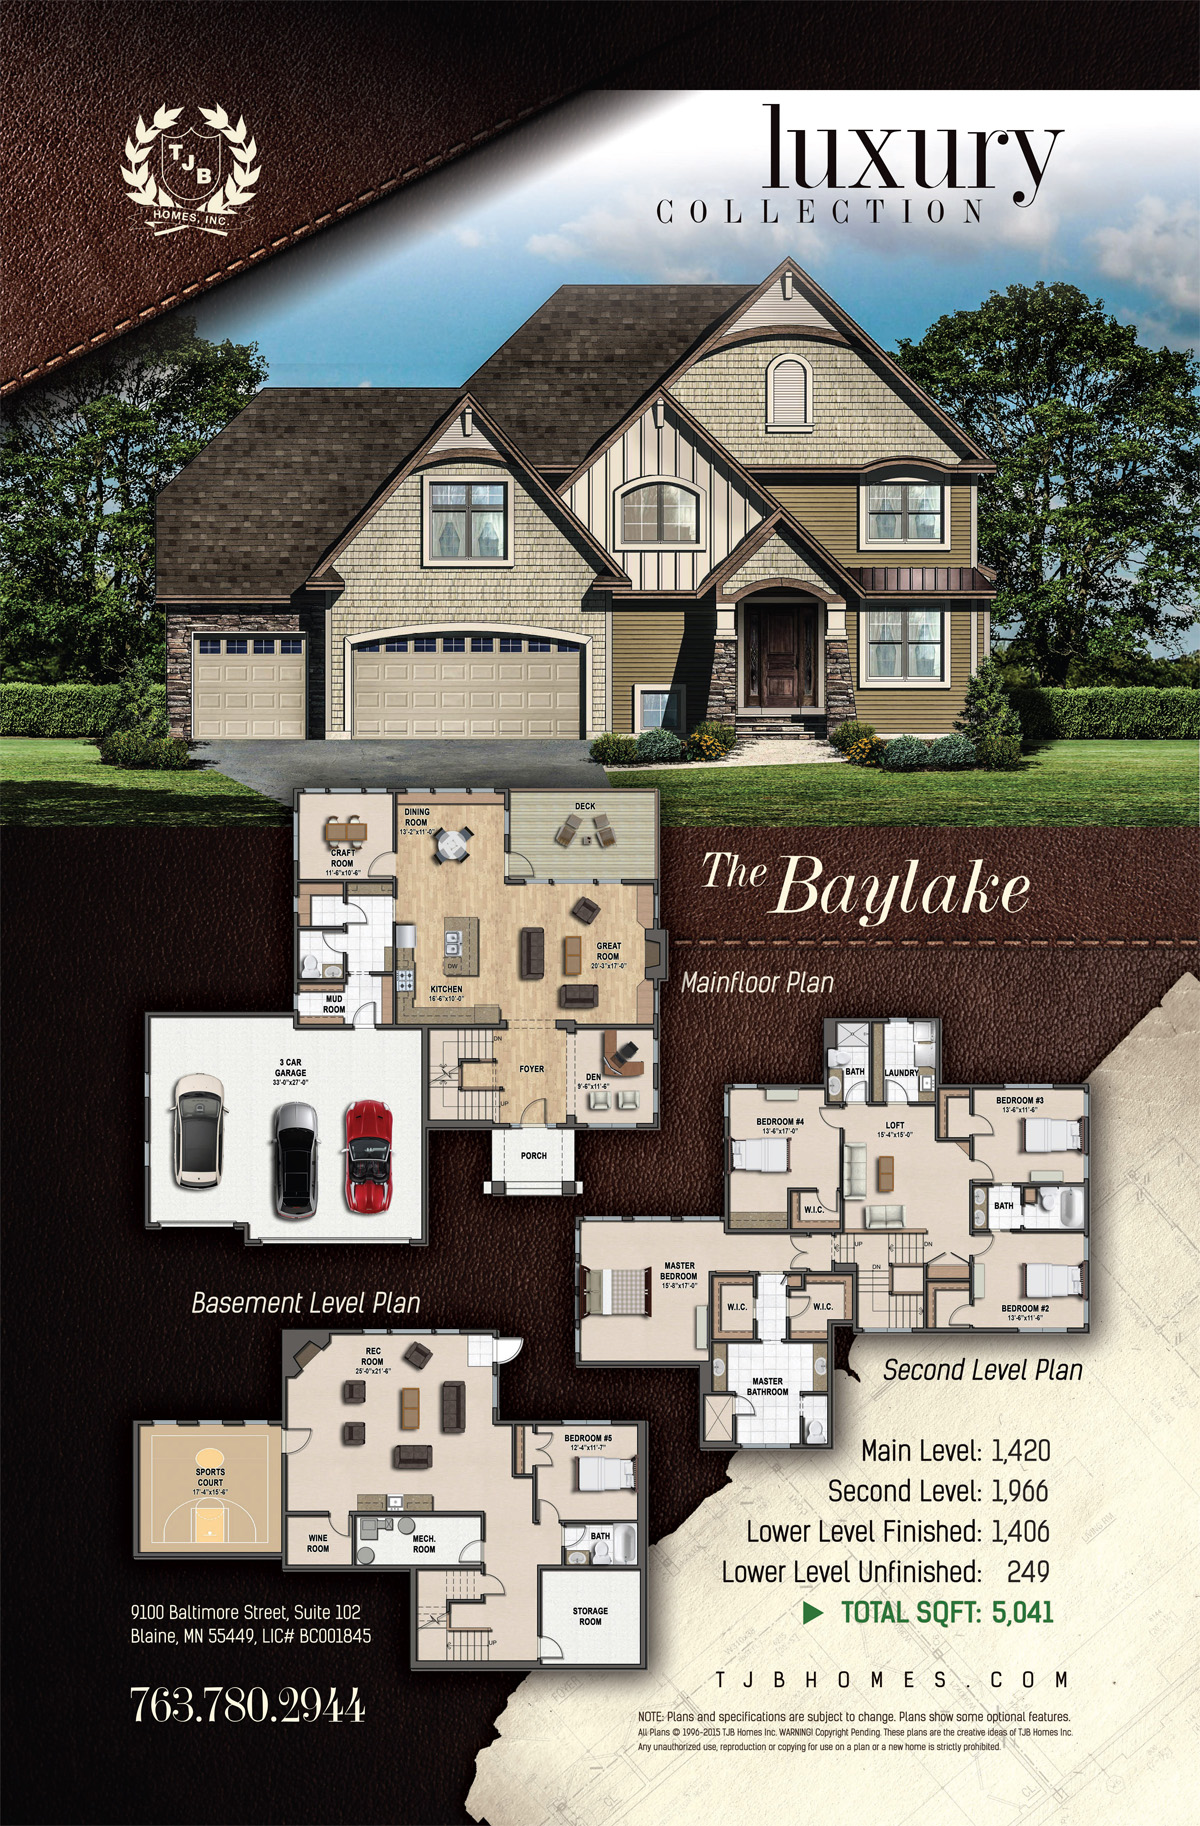 Luxury Collection Home Plans - The Baylake